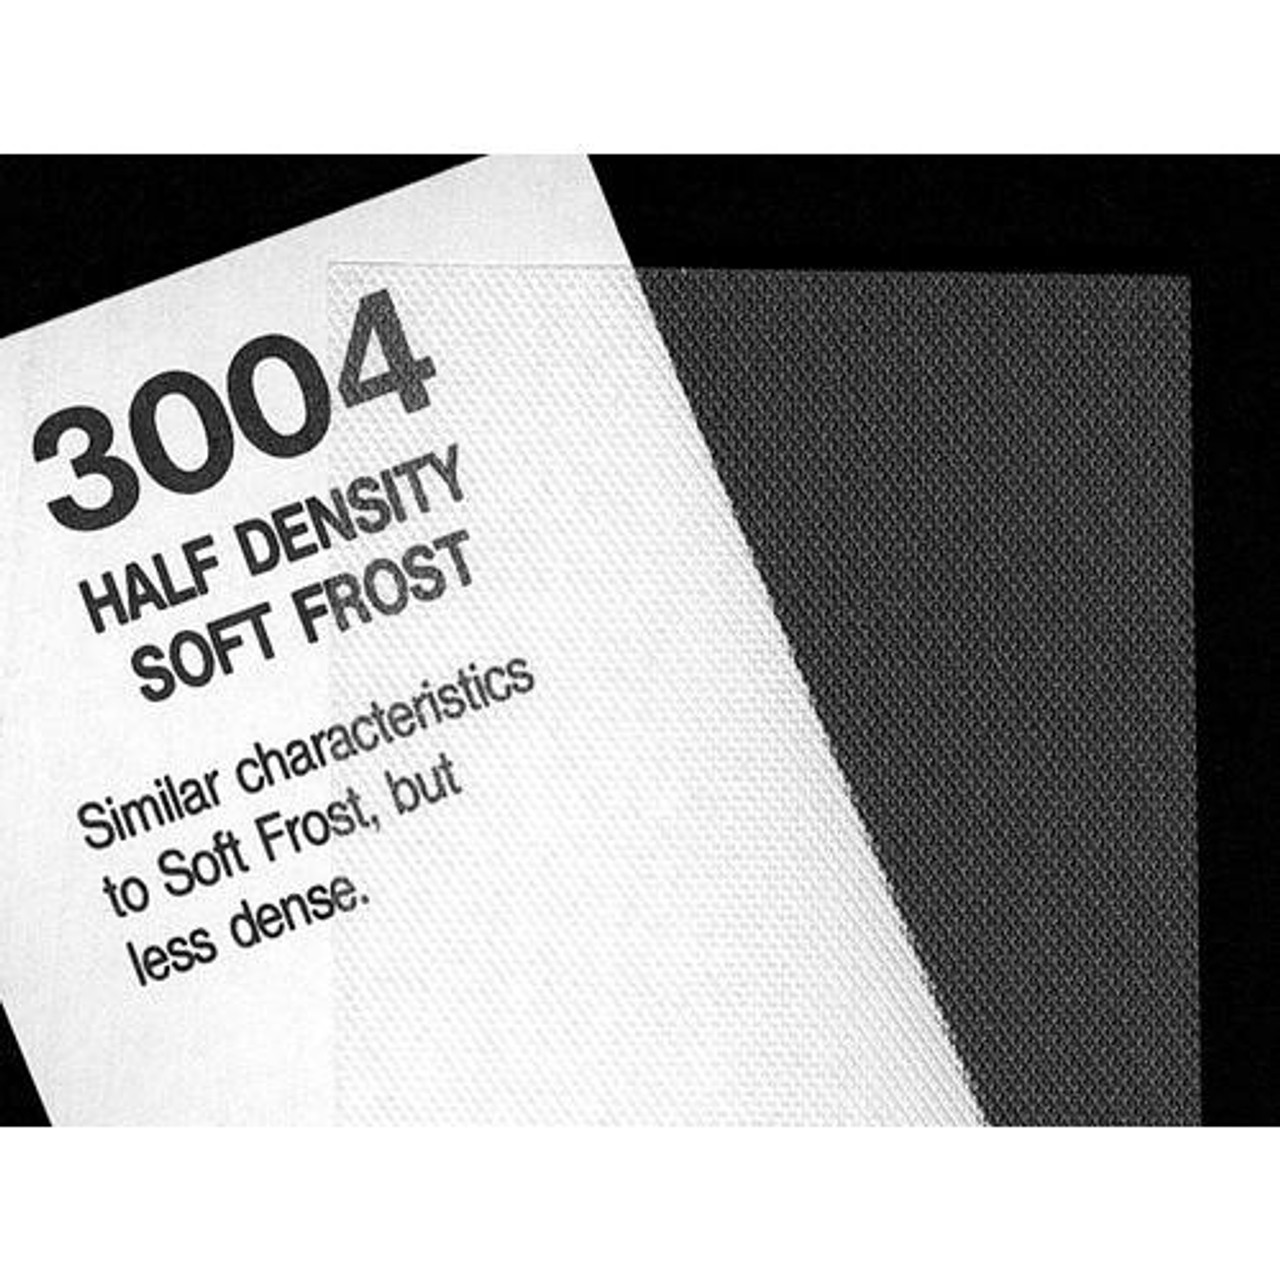 "#3004 Rosco Cinegel Half Density Soft Frost, 20x24"", Gels"